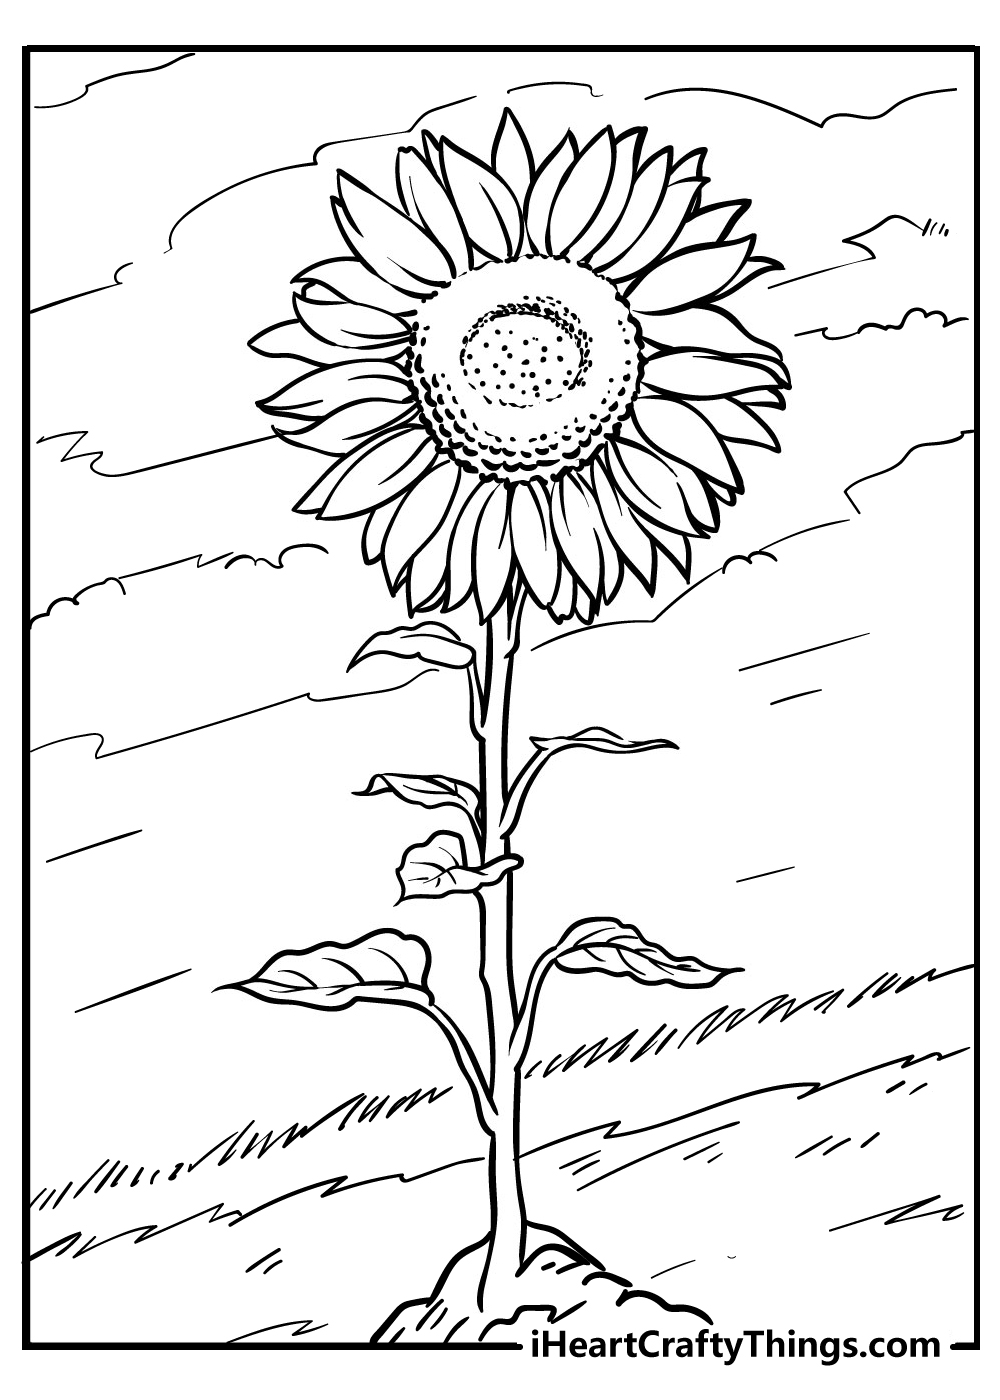 black and white sunflower colouring images